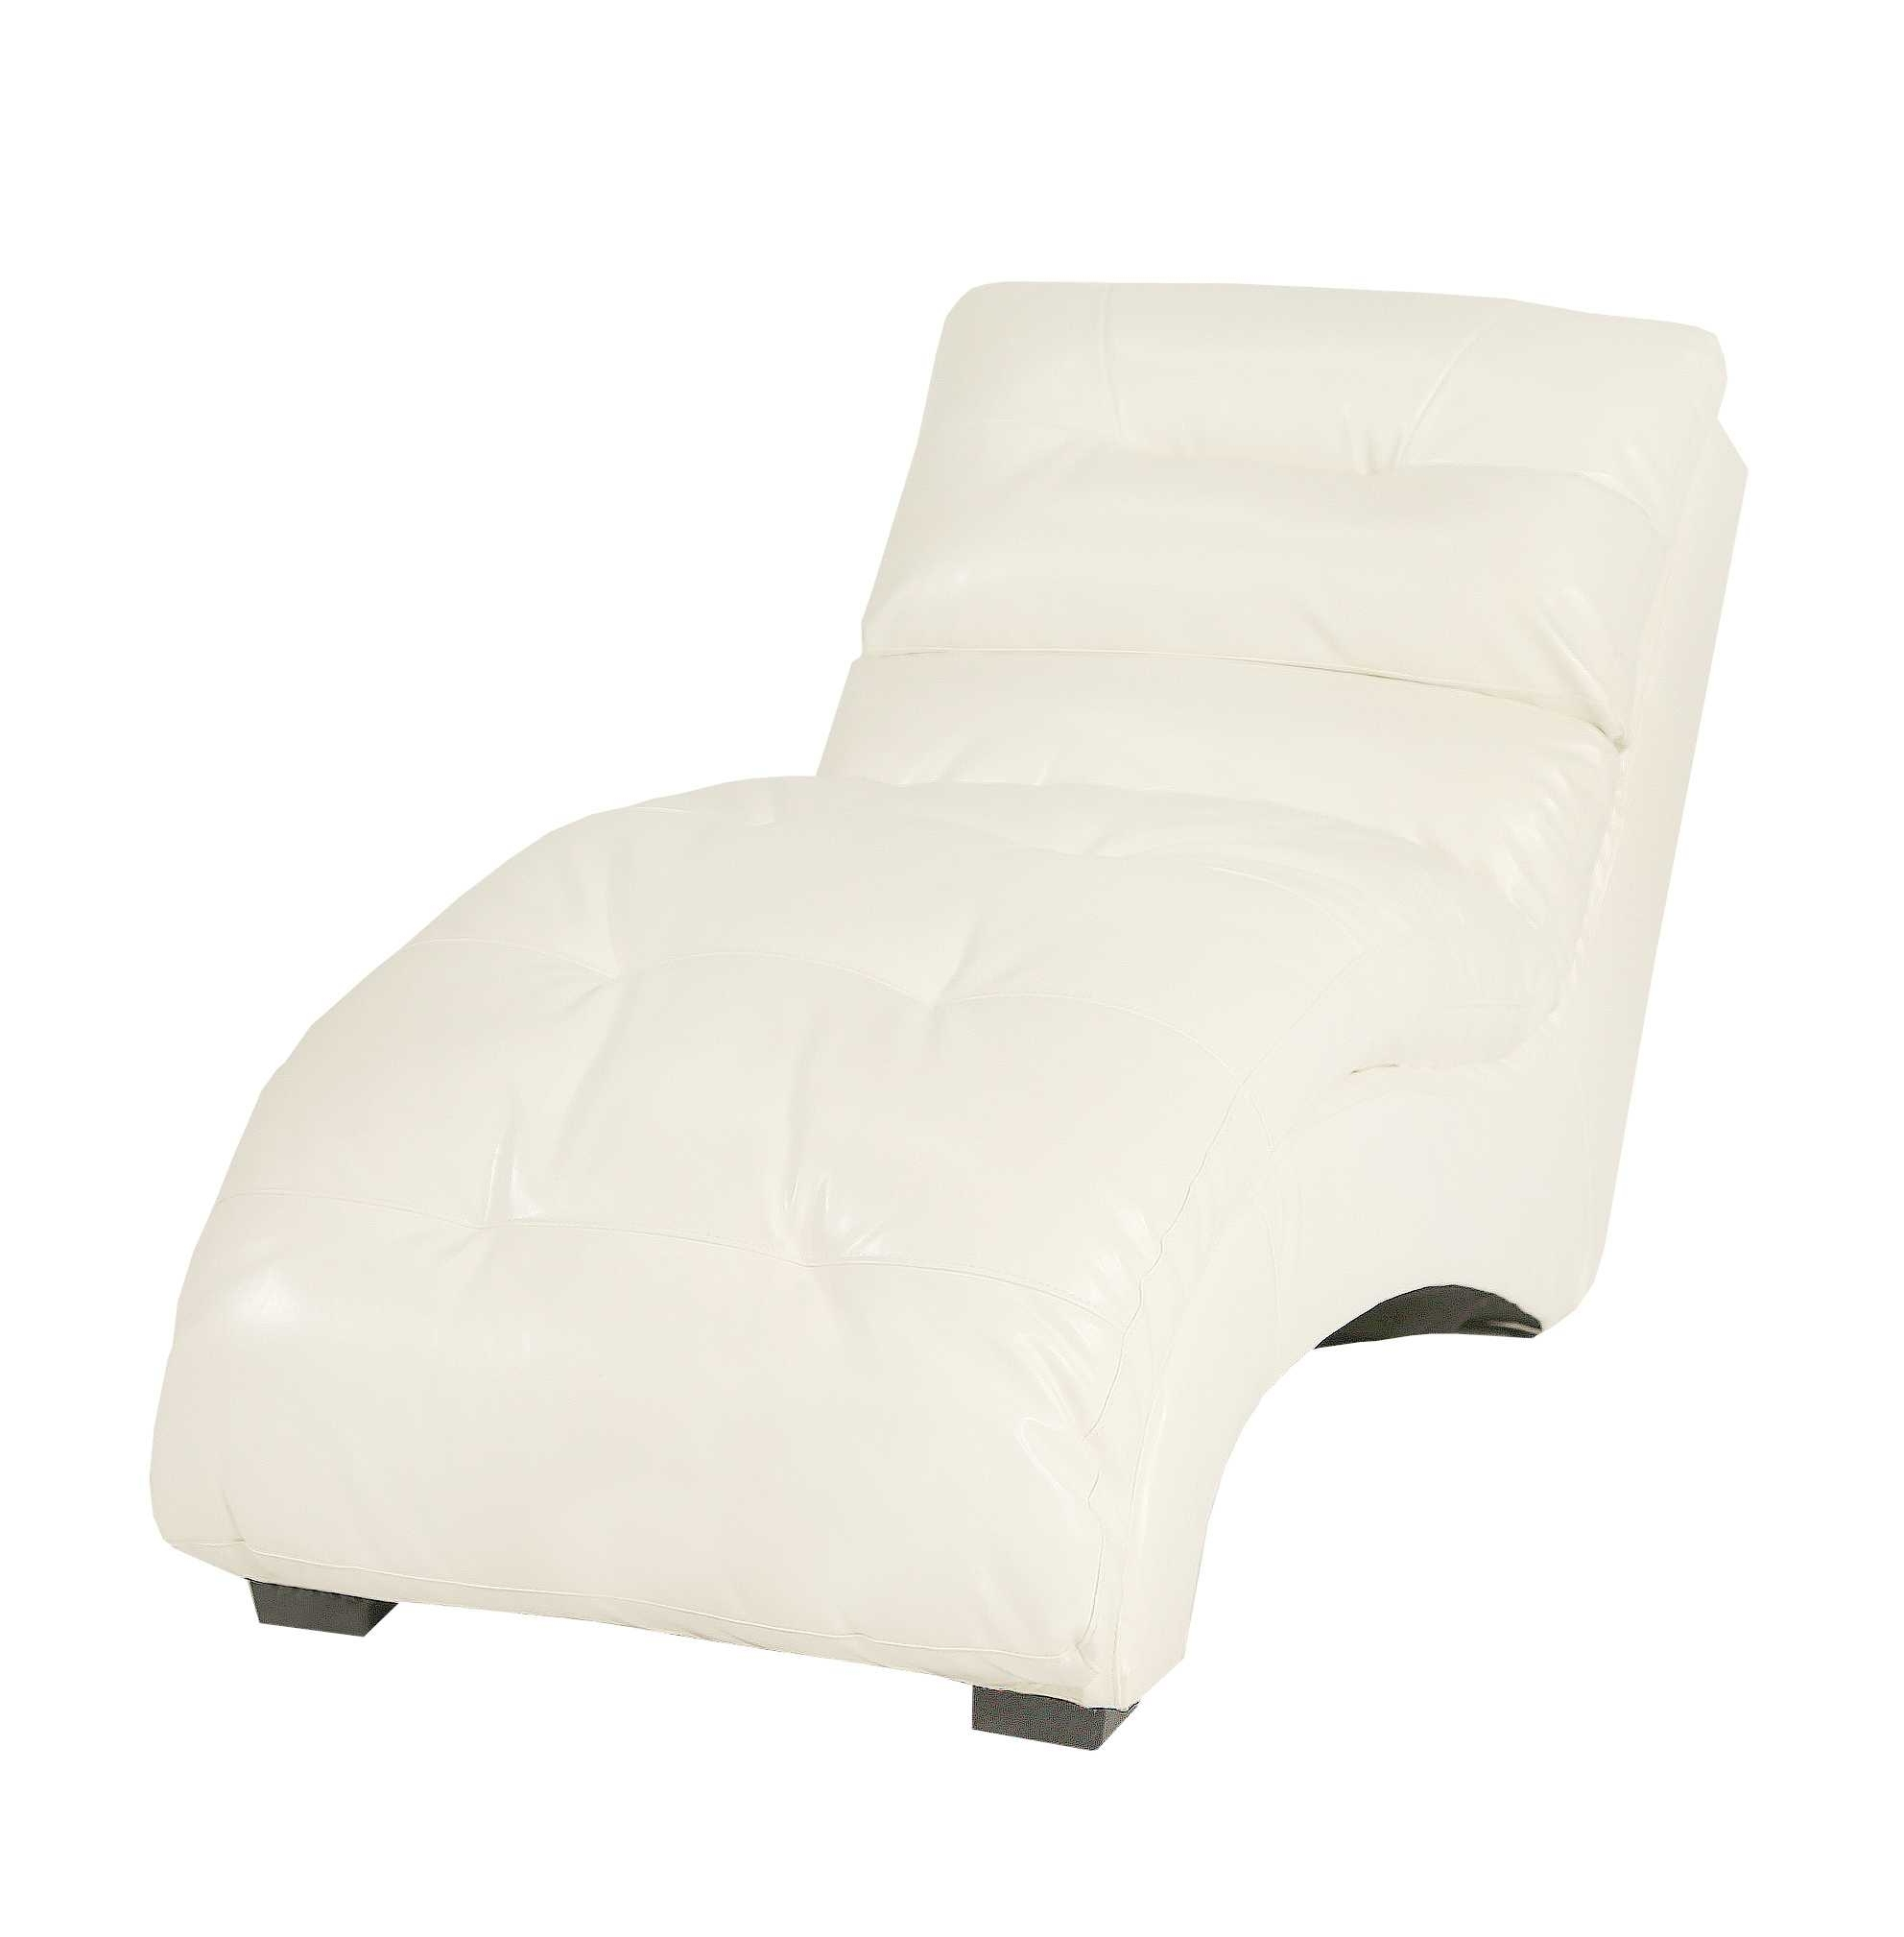 Widely Used White Chaise Lounge – Rpisite Throughout White Chaises (View 15 of 15)